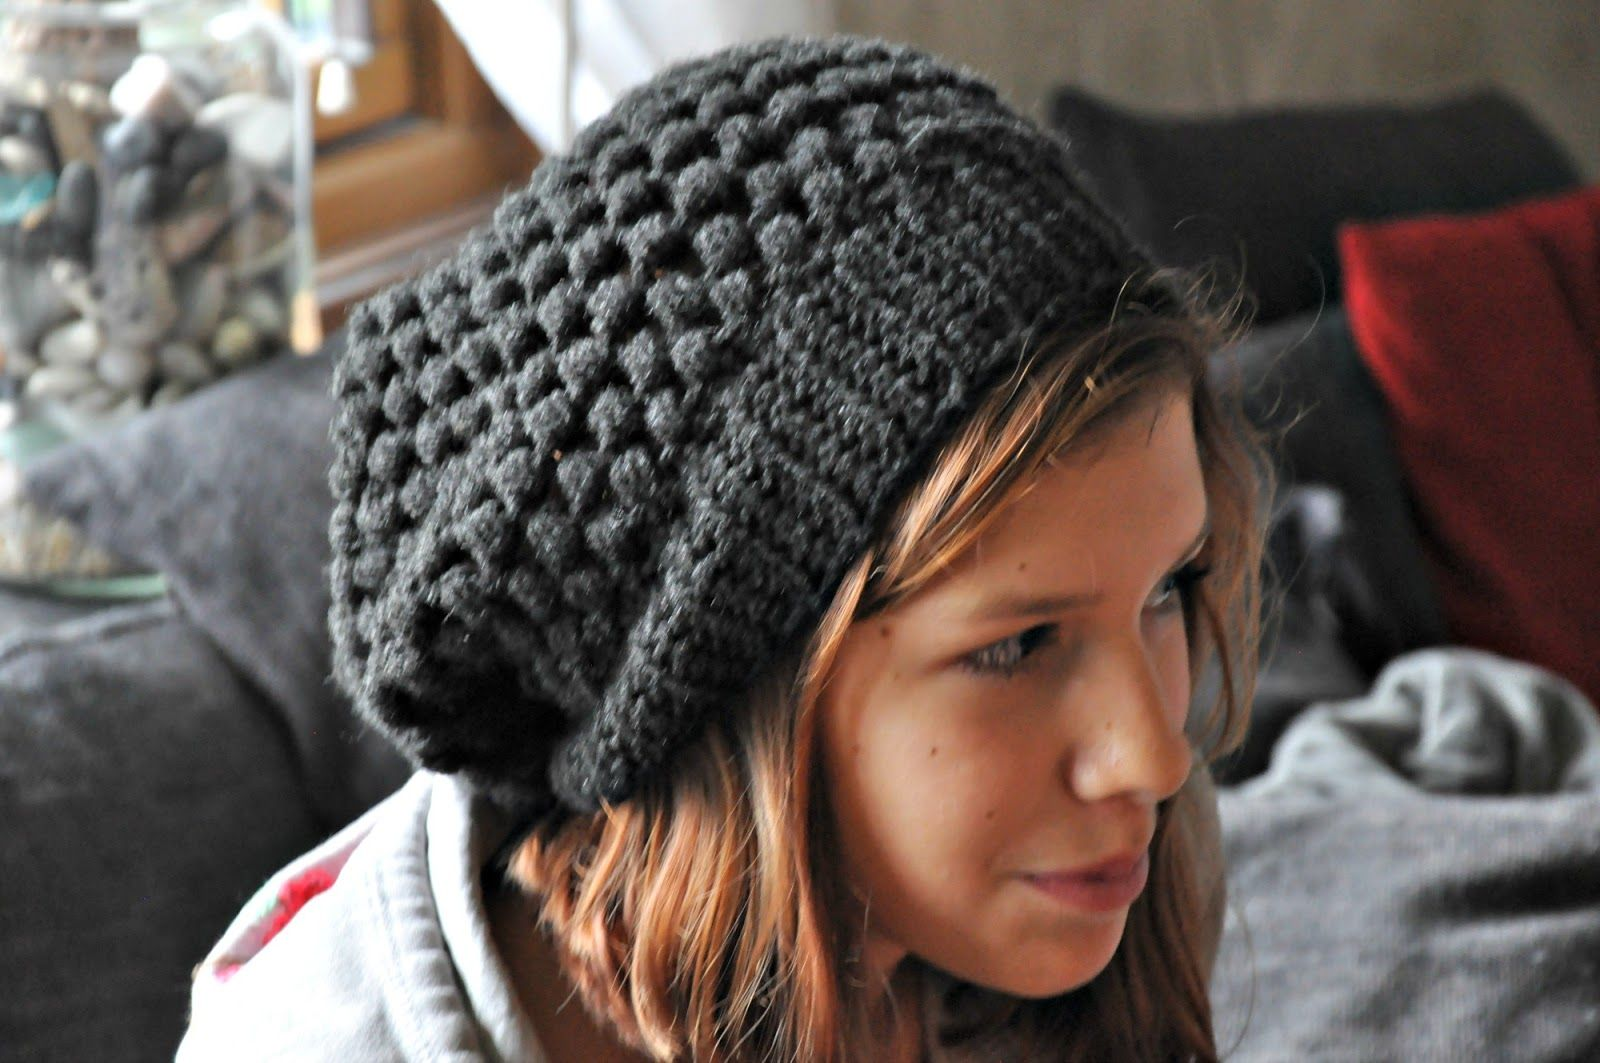 moogly crochetslouchy beanie for men | The hat pattern uses a stitch ...